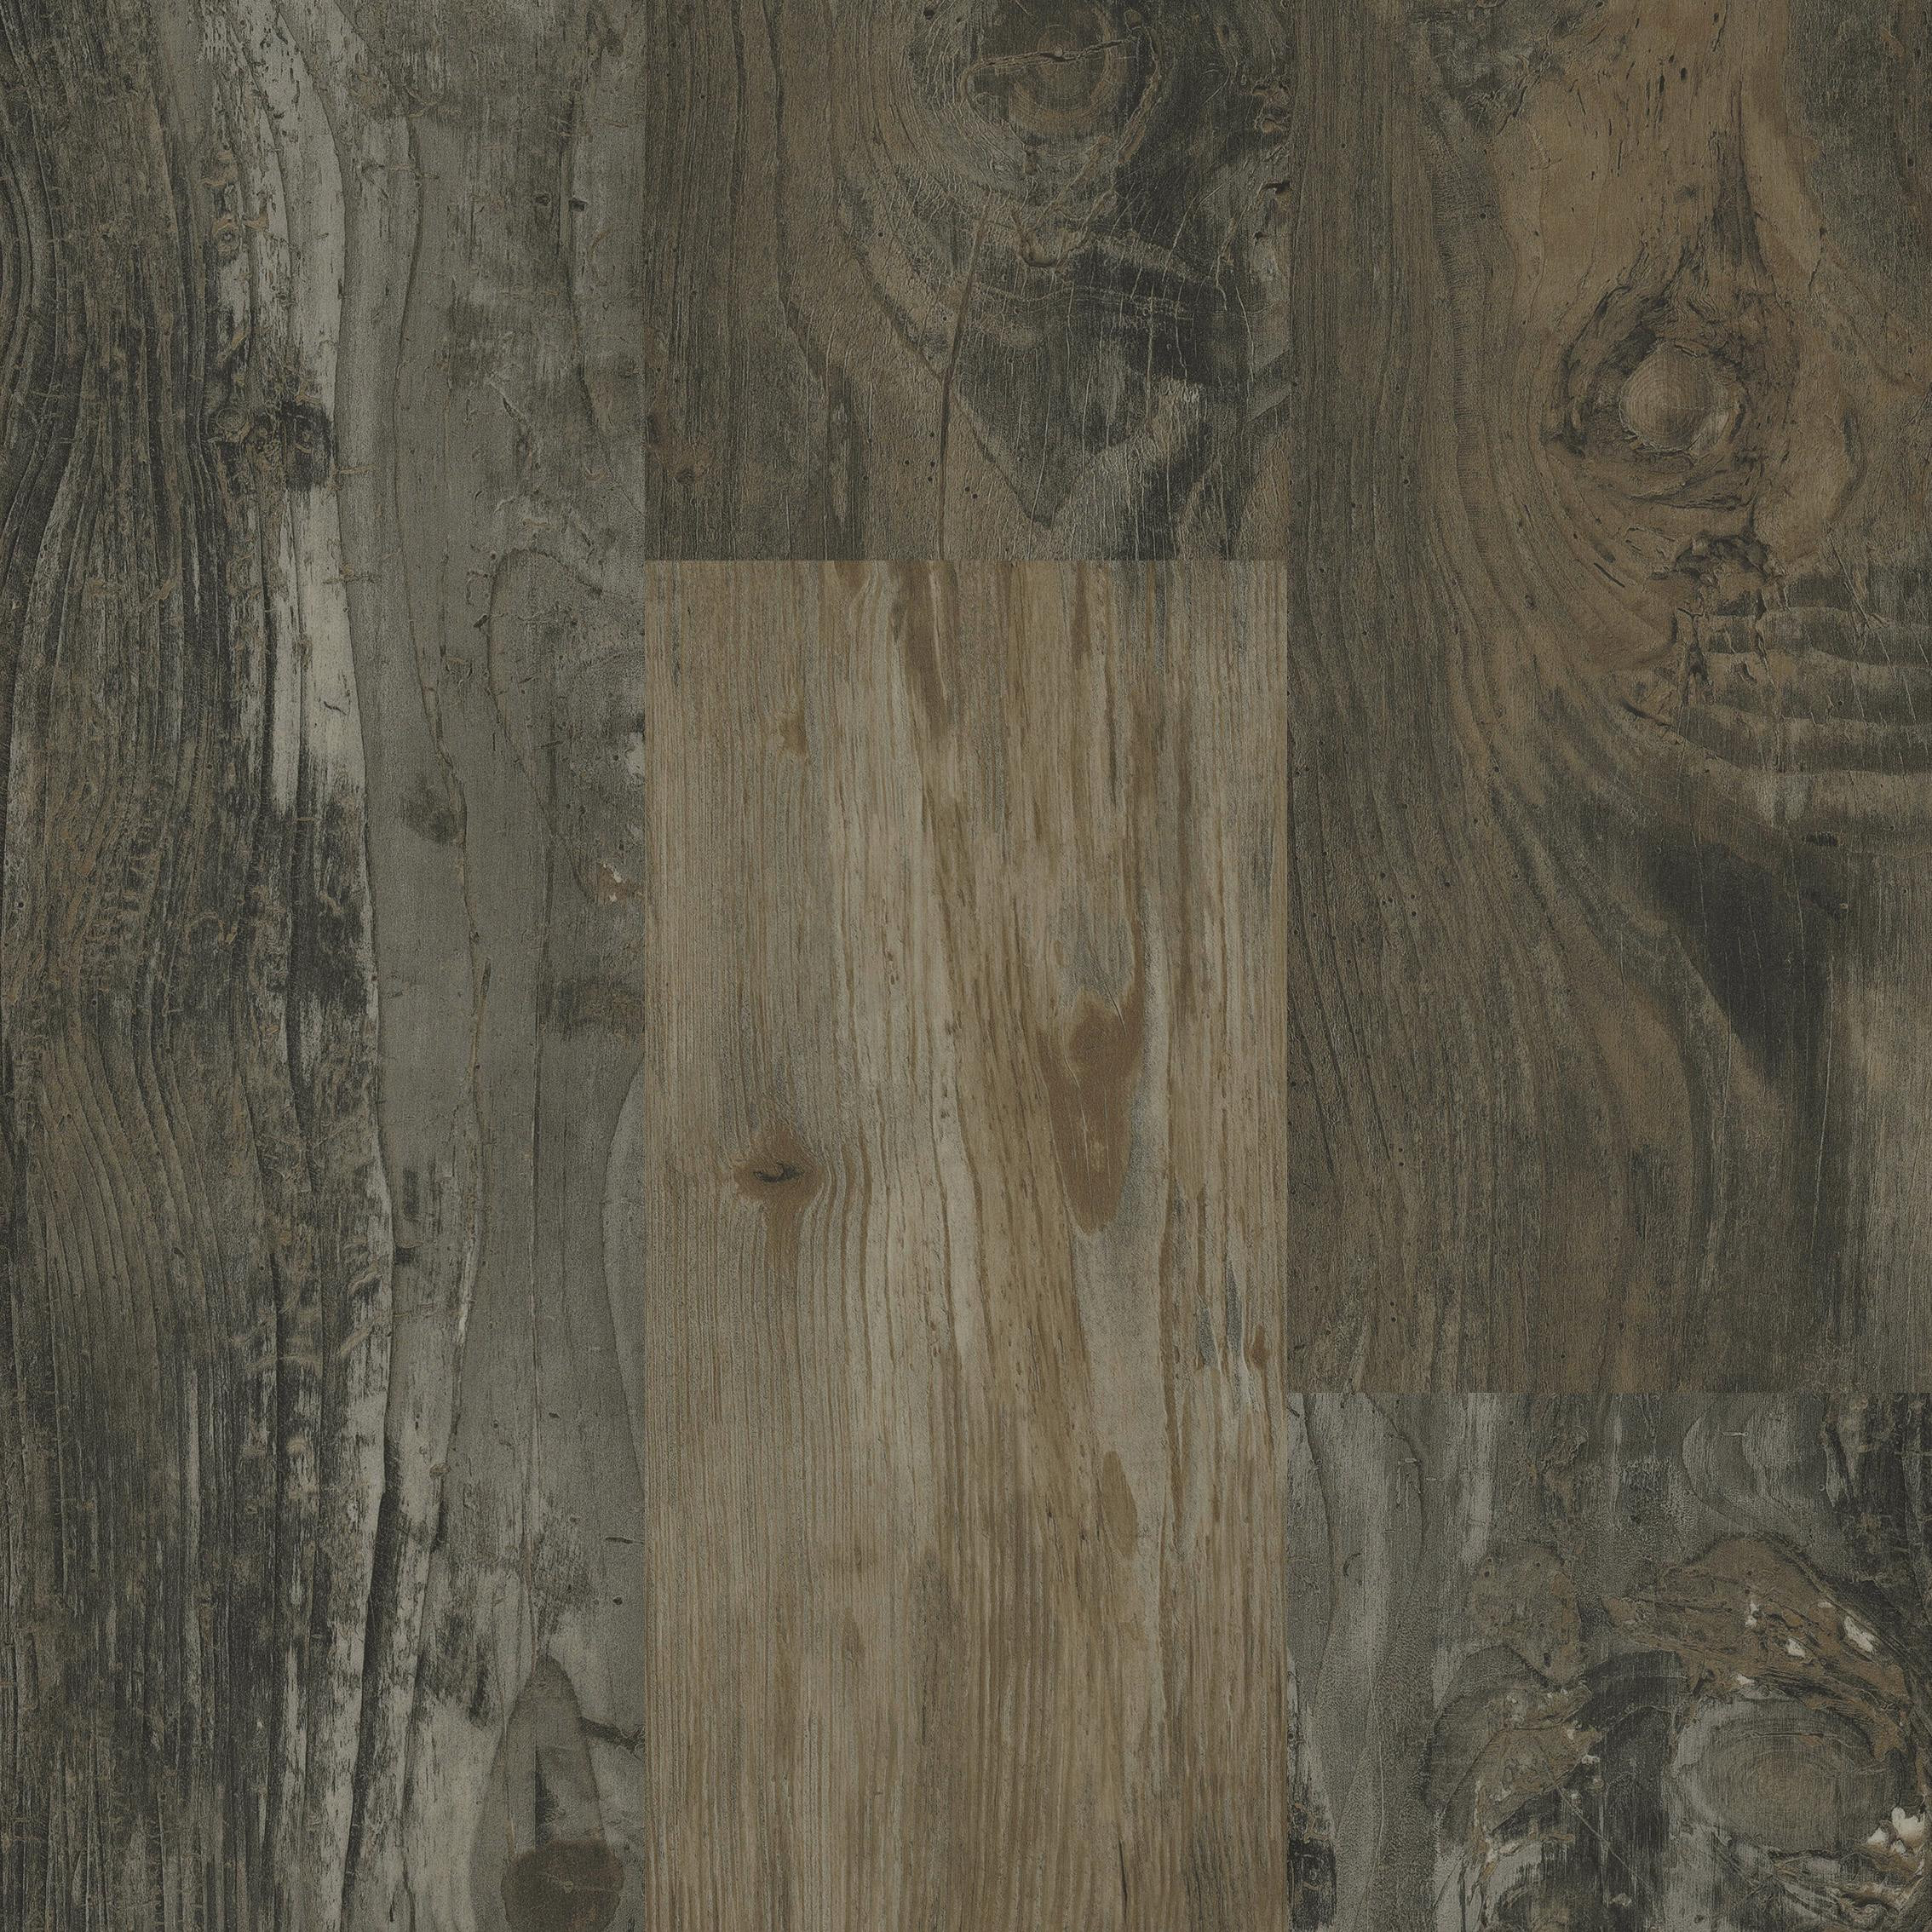 vinyl plank flooring vs engineered hardwood of moduleo vision bridge timber 7 56 click together luxury vinyl plank within moduleo vision bridge timber 7 56 click together luxury vinyl plank 60231